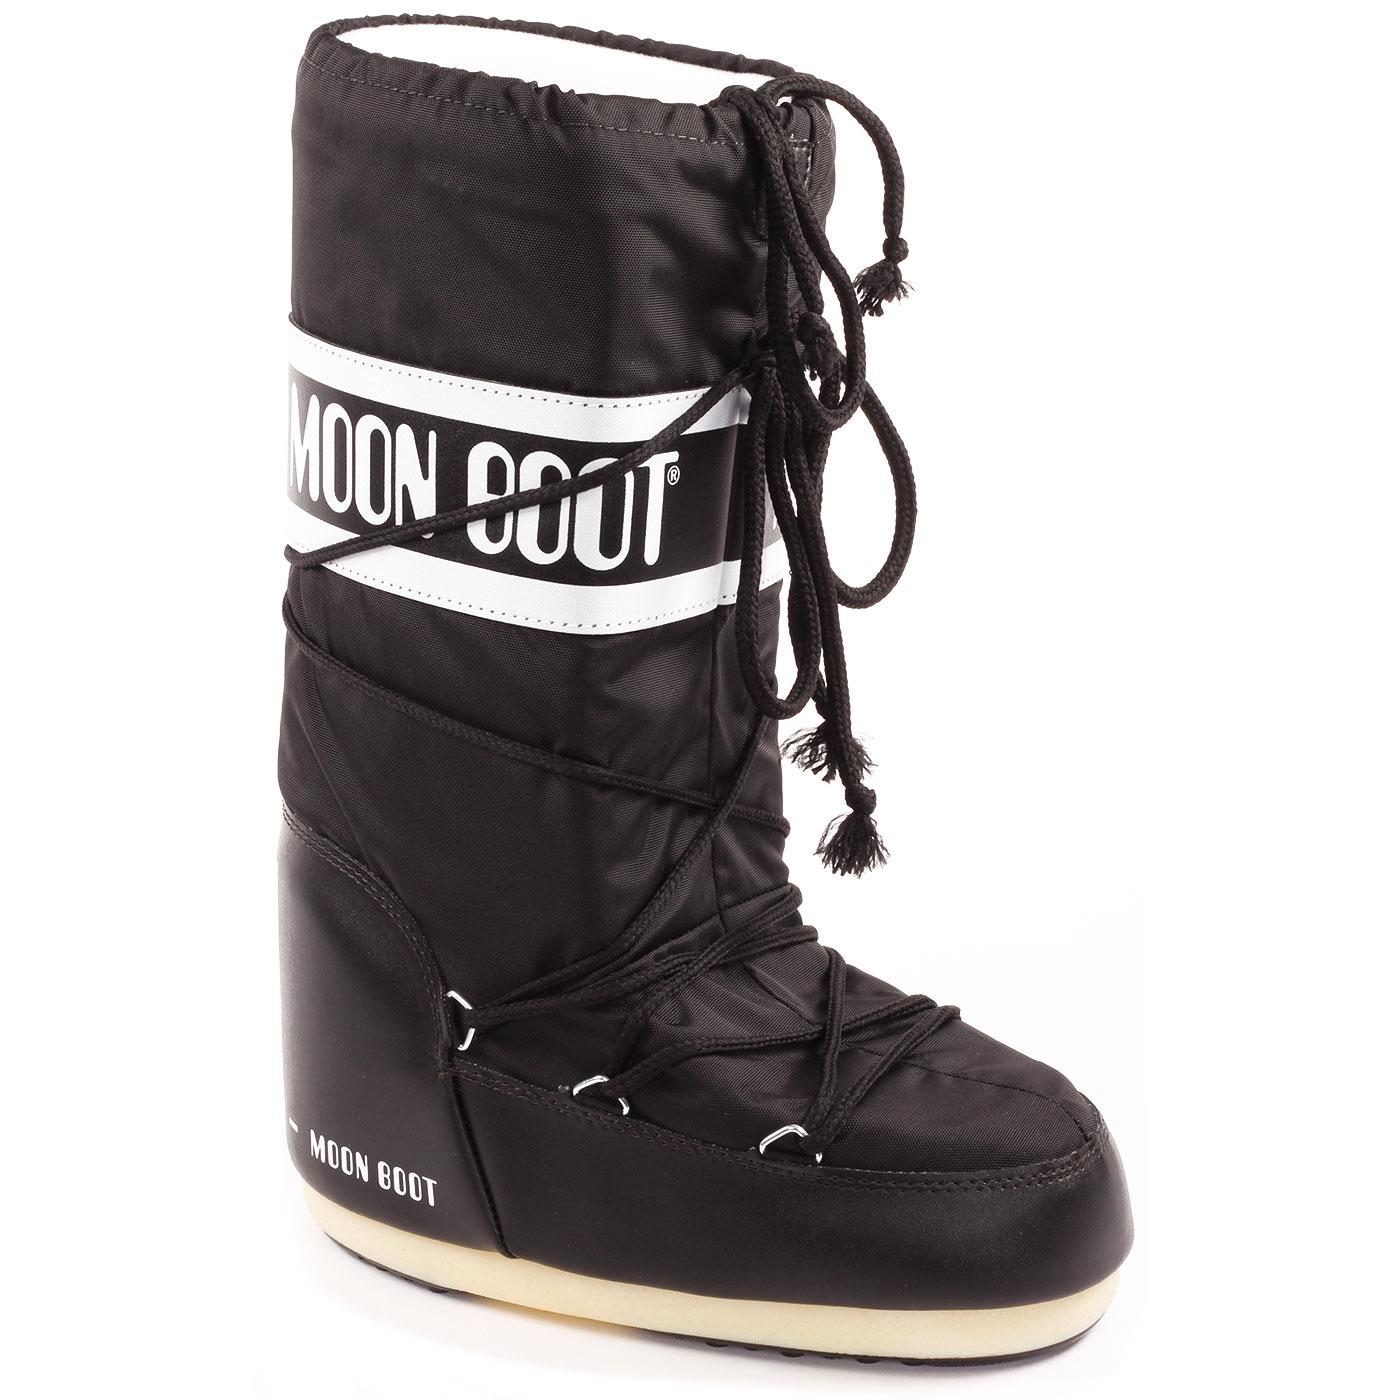 ORIGINAL MOON BOOT Classic Retro 70s Snow Boots B